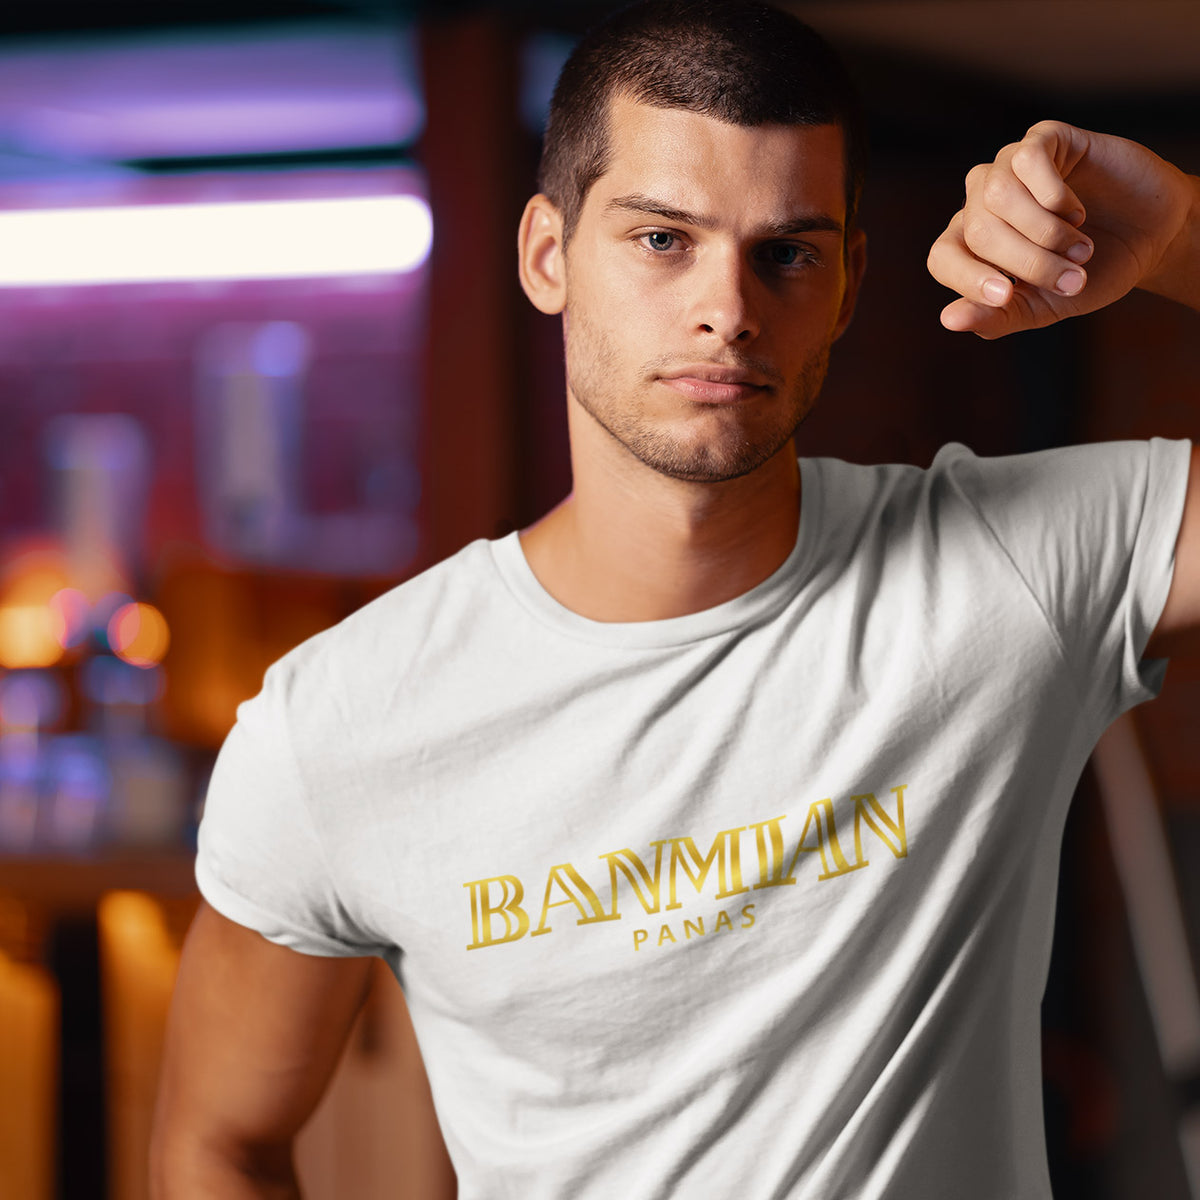 (Exclusive Gold Edition) Banmian Panas Crew Neck Short Sleeve T-shirt